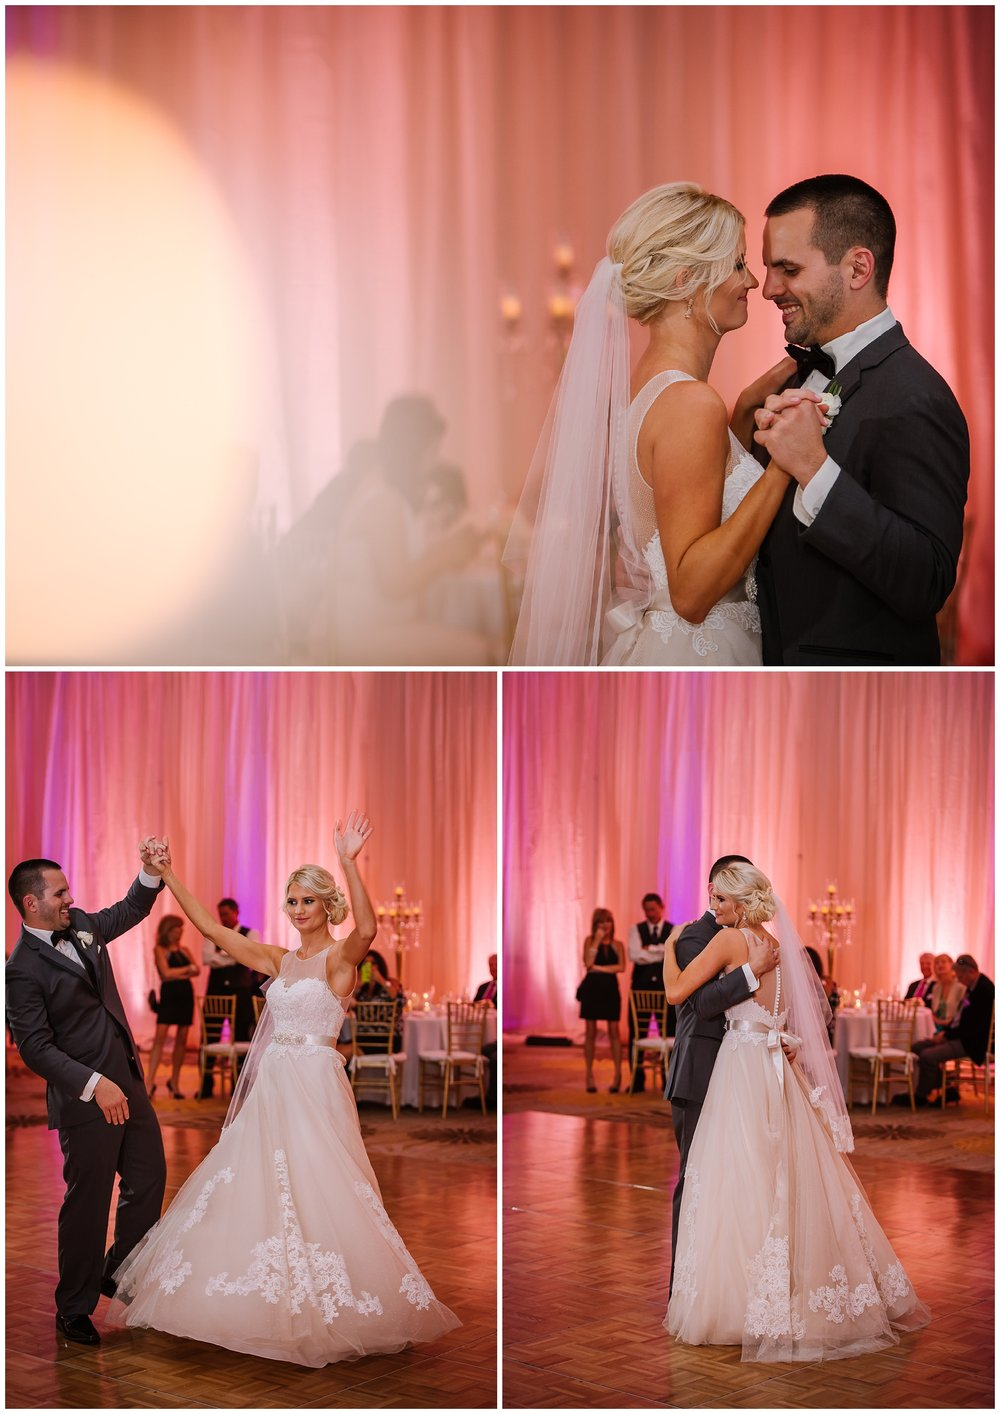 Sarasota-wedding-photographer-hyatt-regency-blush_0059.jpg